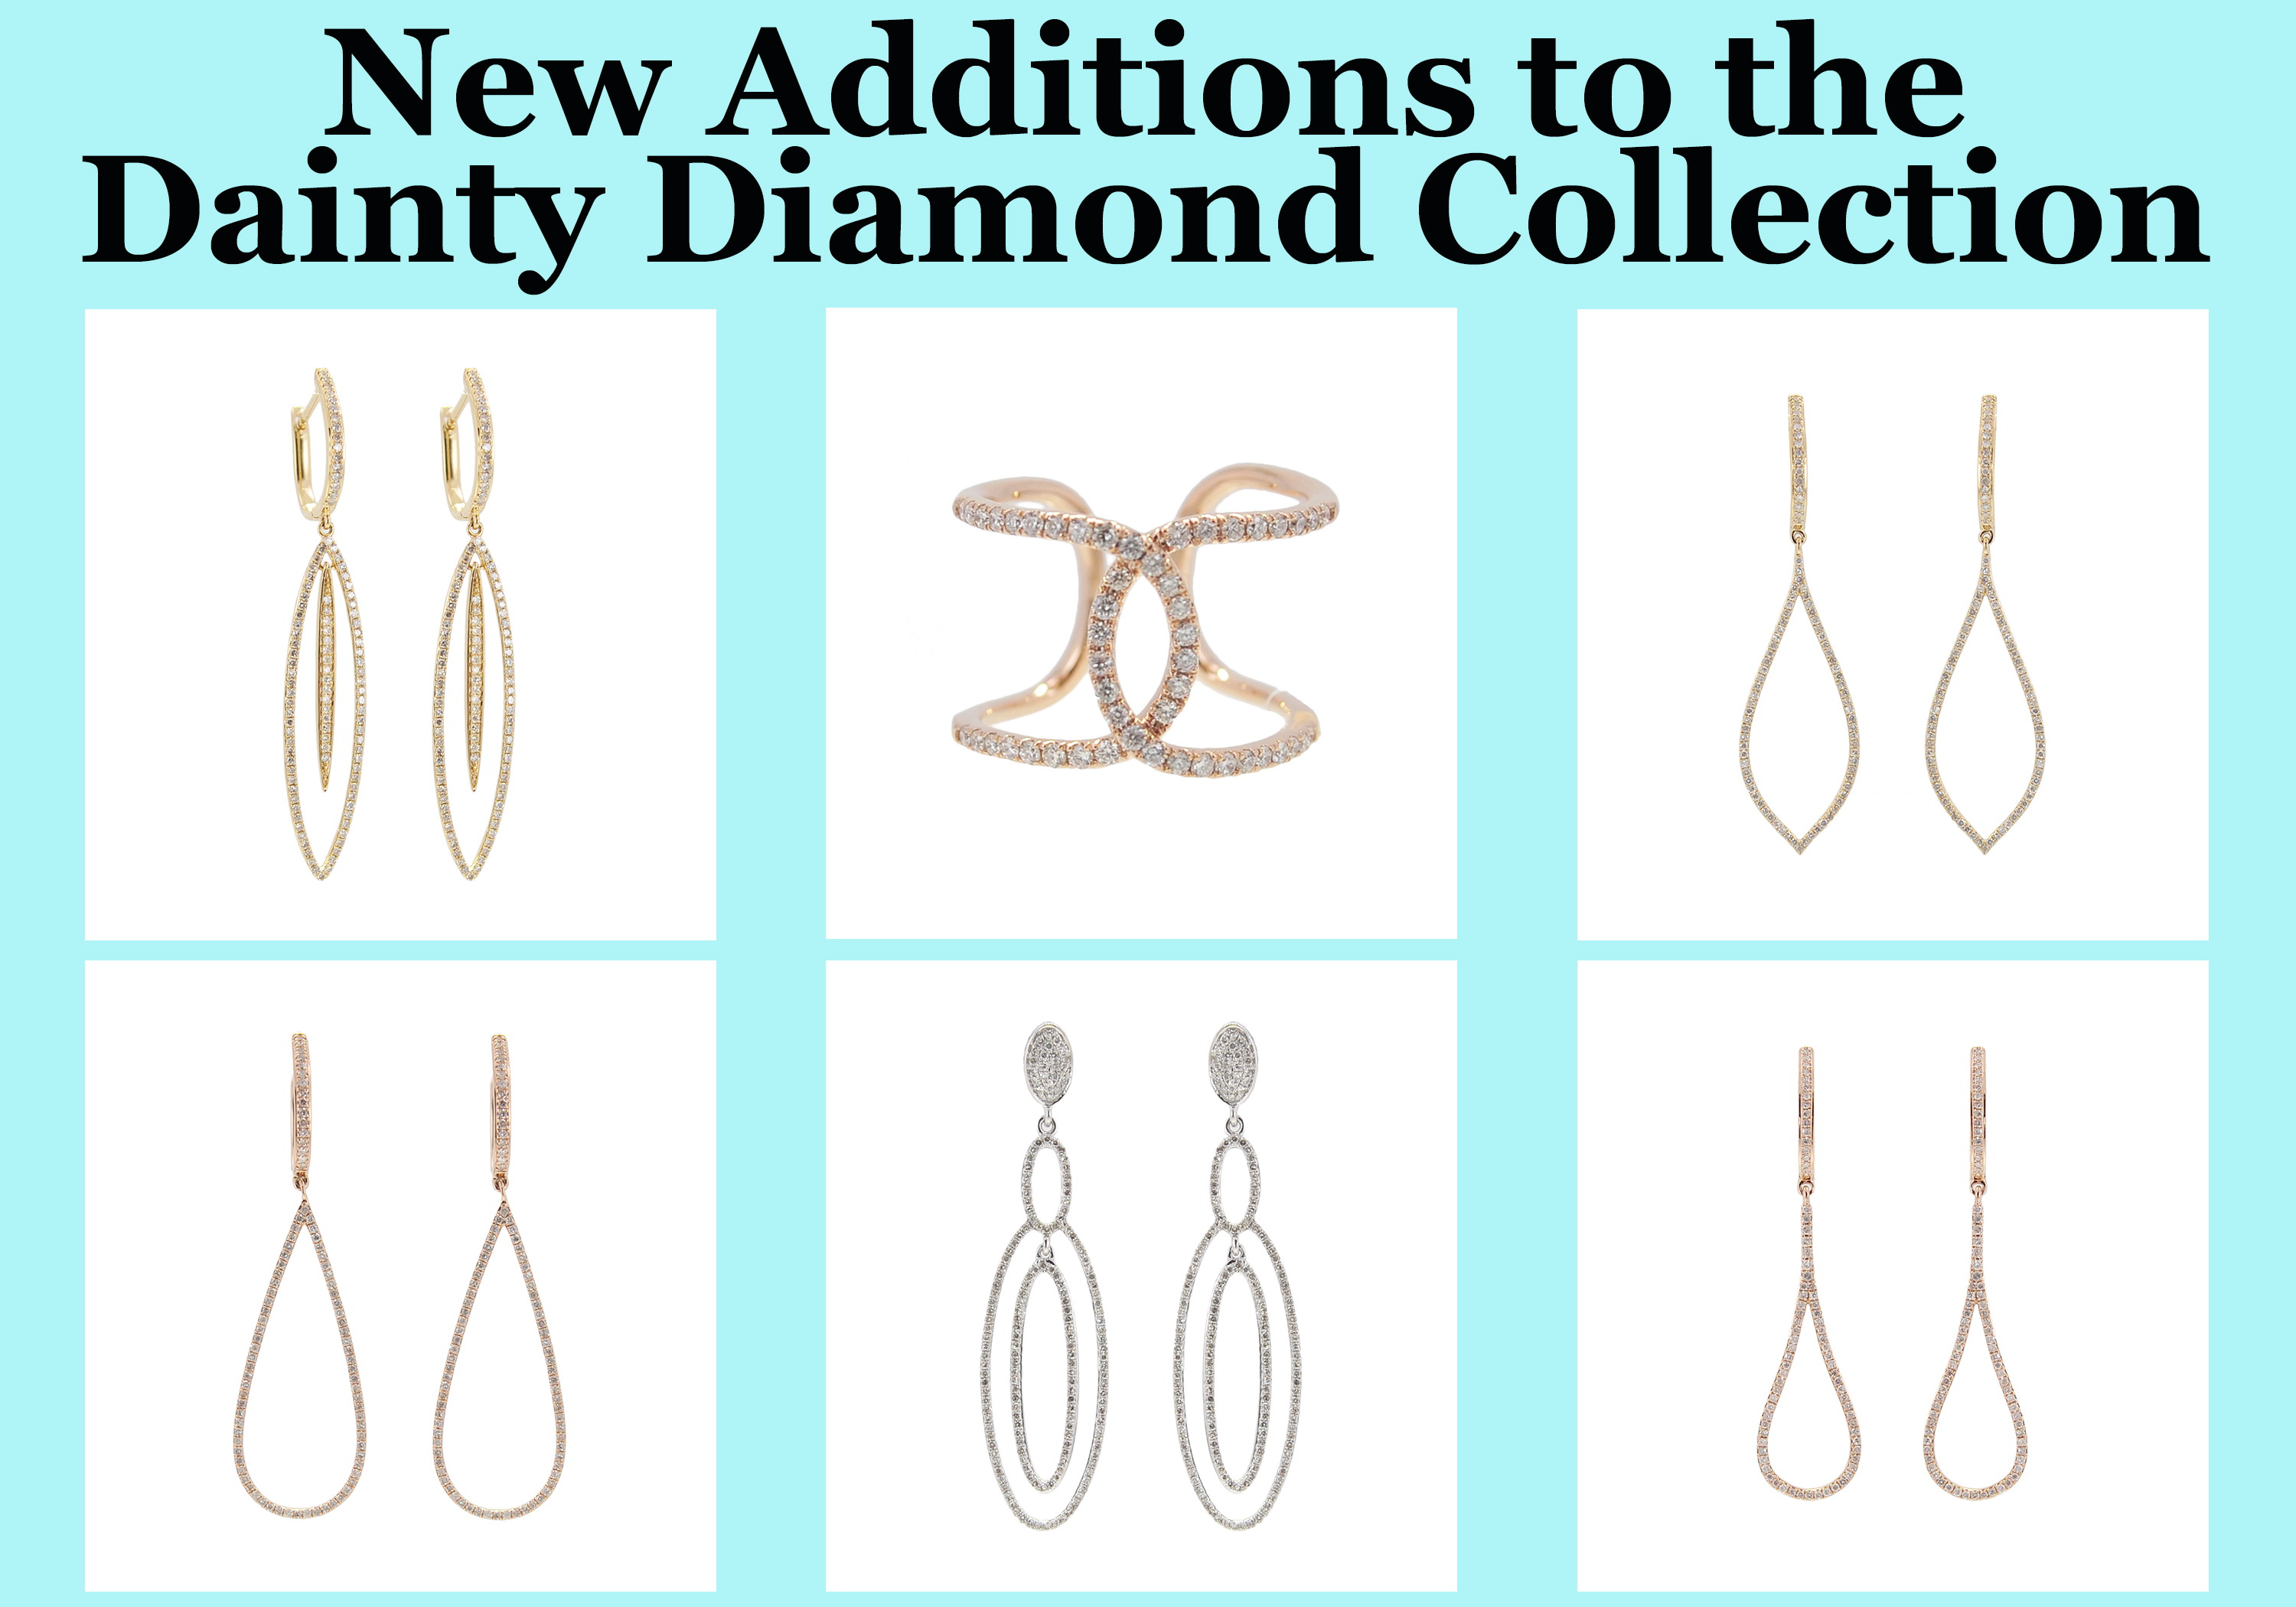 Assortment of new additions to the Dainty Diamond Collection